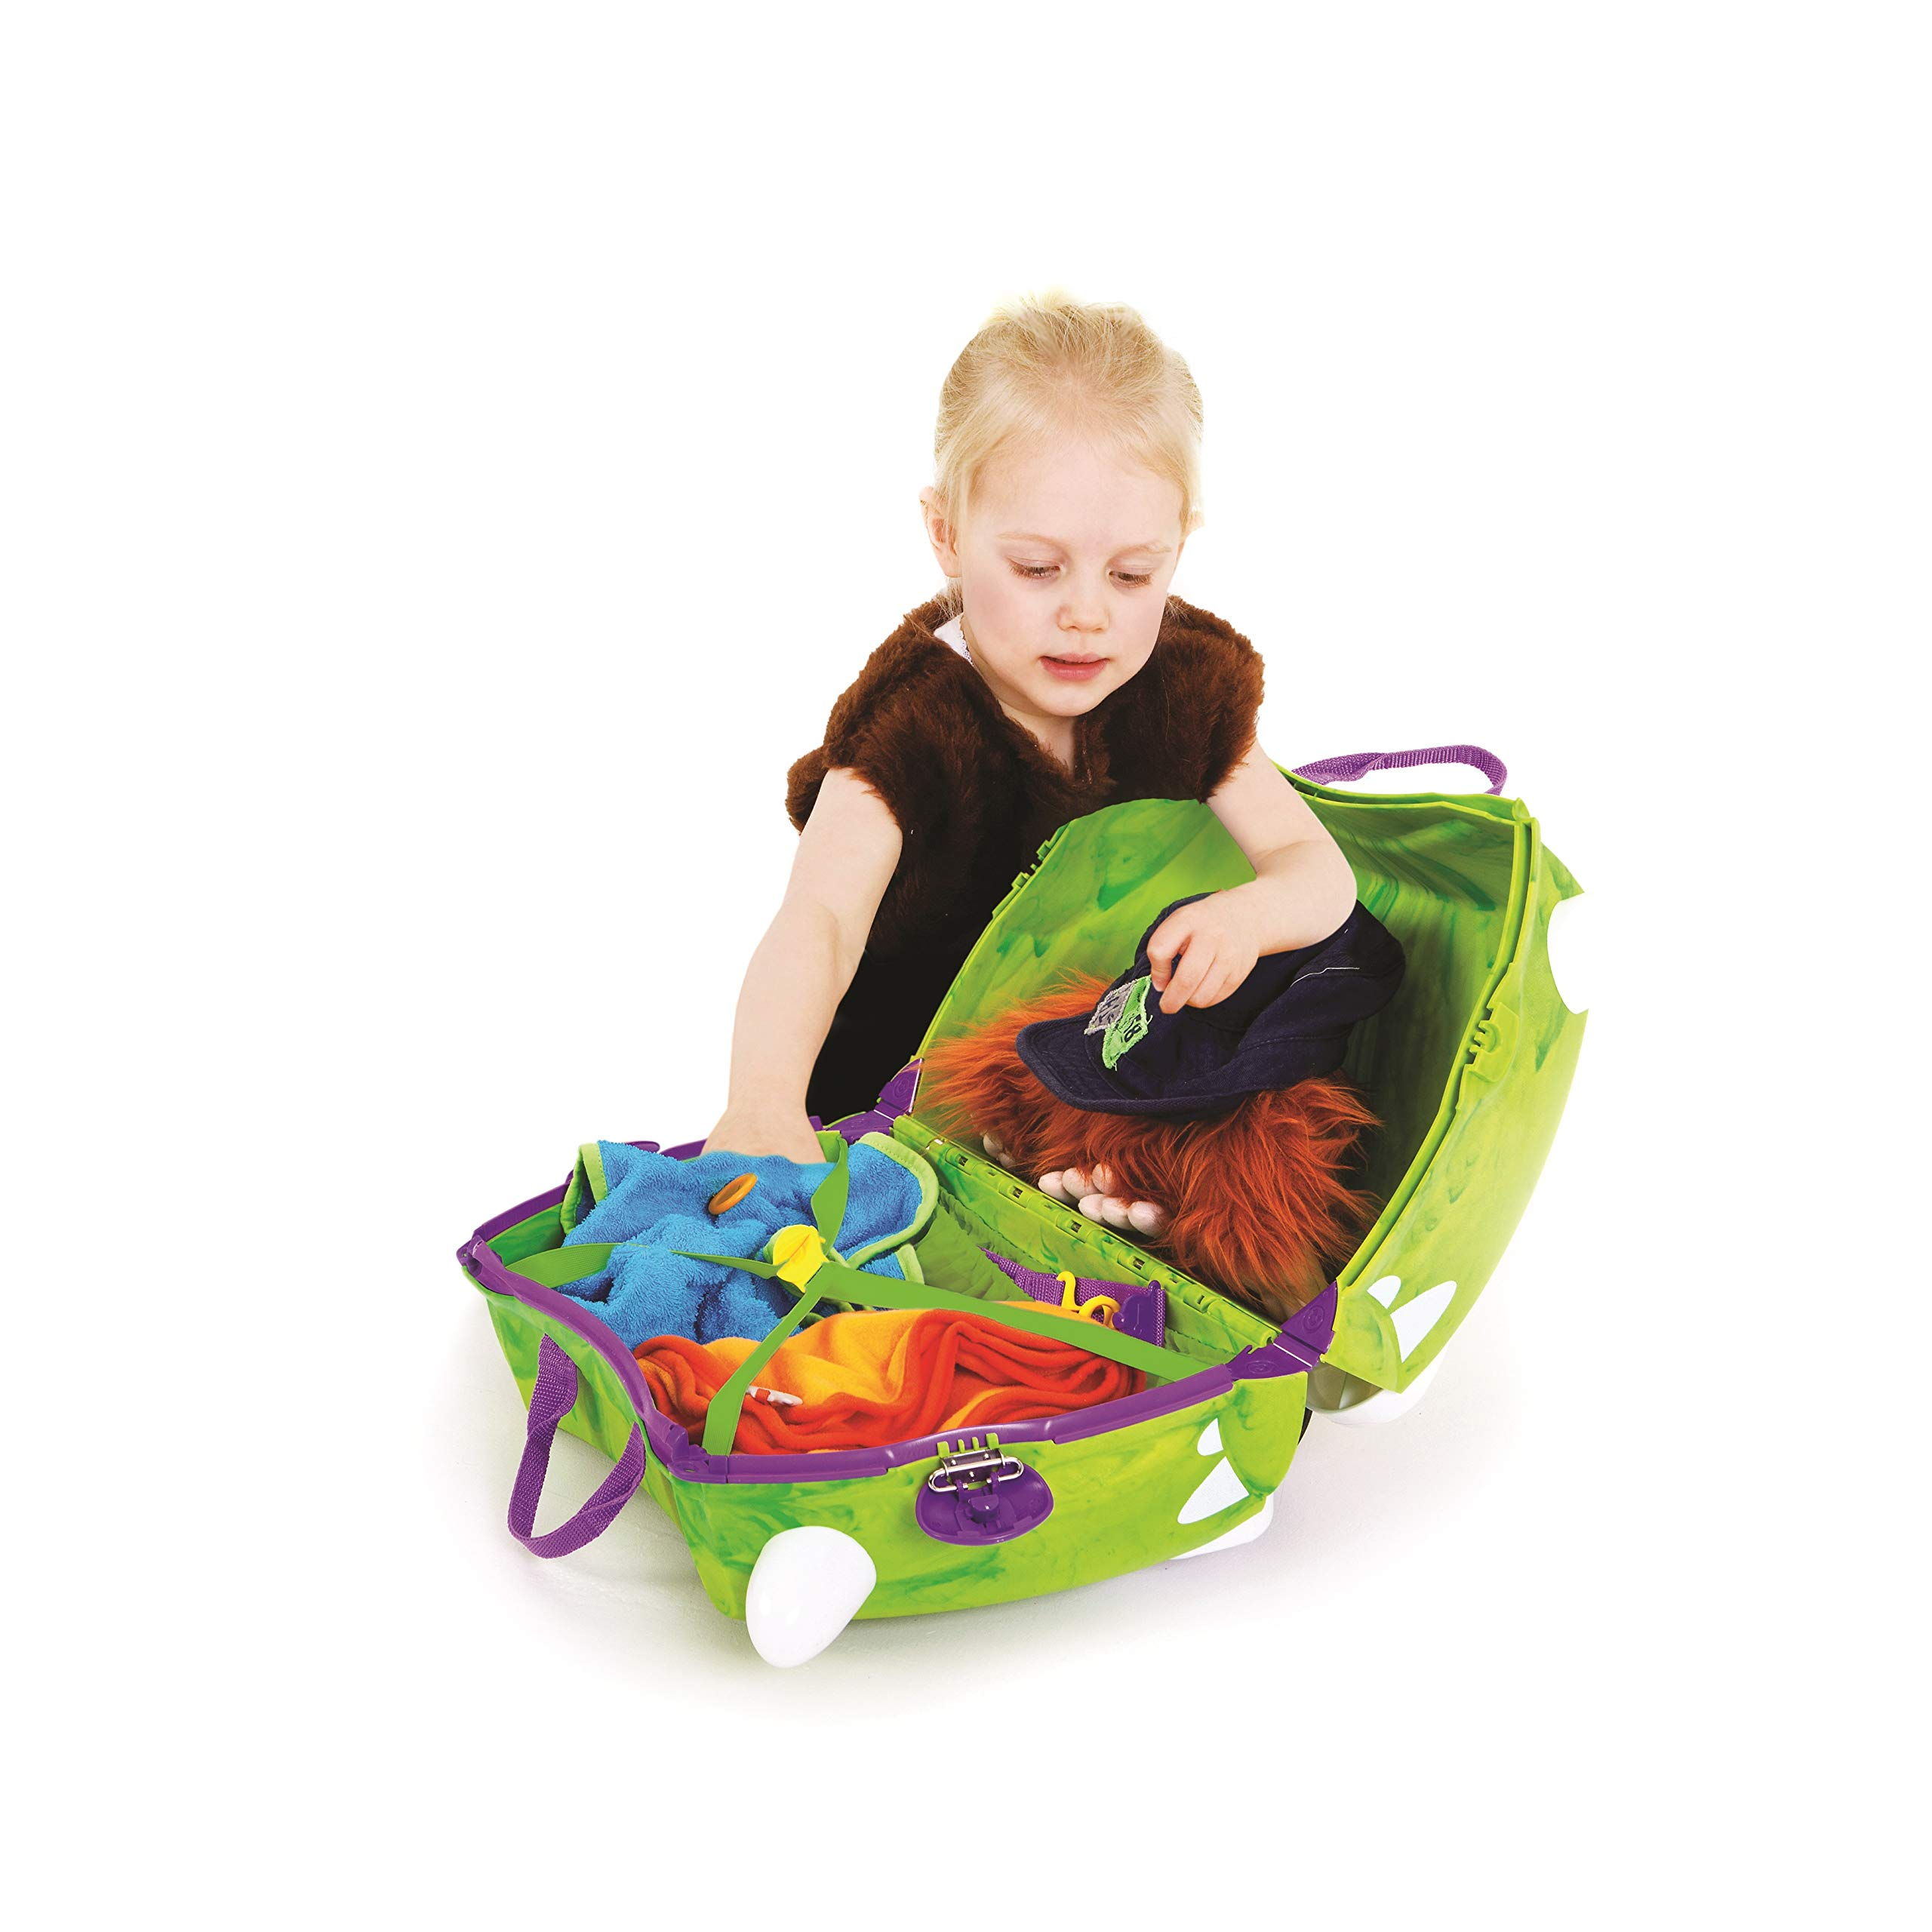 Trunki Original Kids Ride-On Suitcase and Carry-On Luggage - Trunkisauras Rex (Green) by Trunki (Image #8)